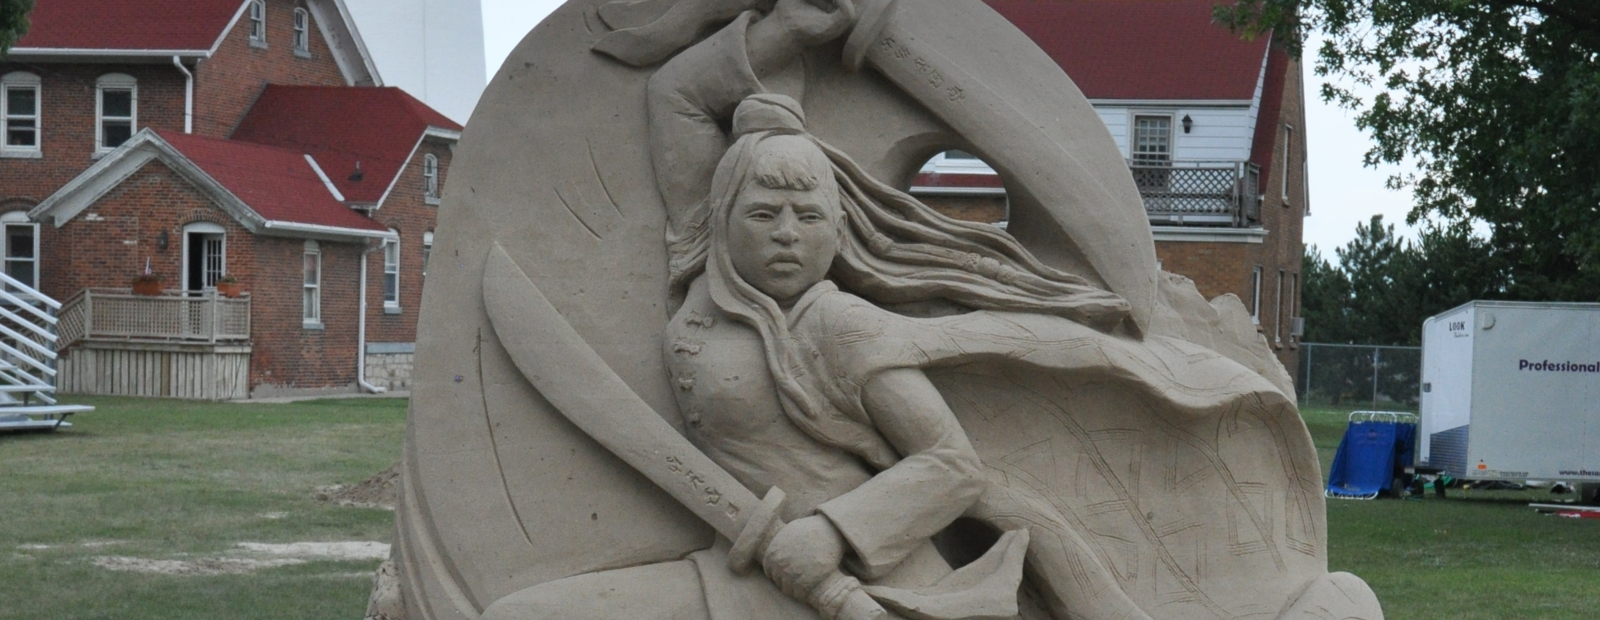 Artists give life to dramatic sculptures during blue water sand fest